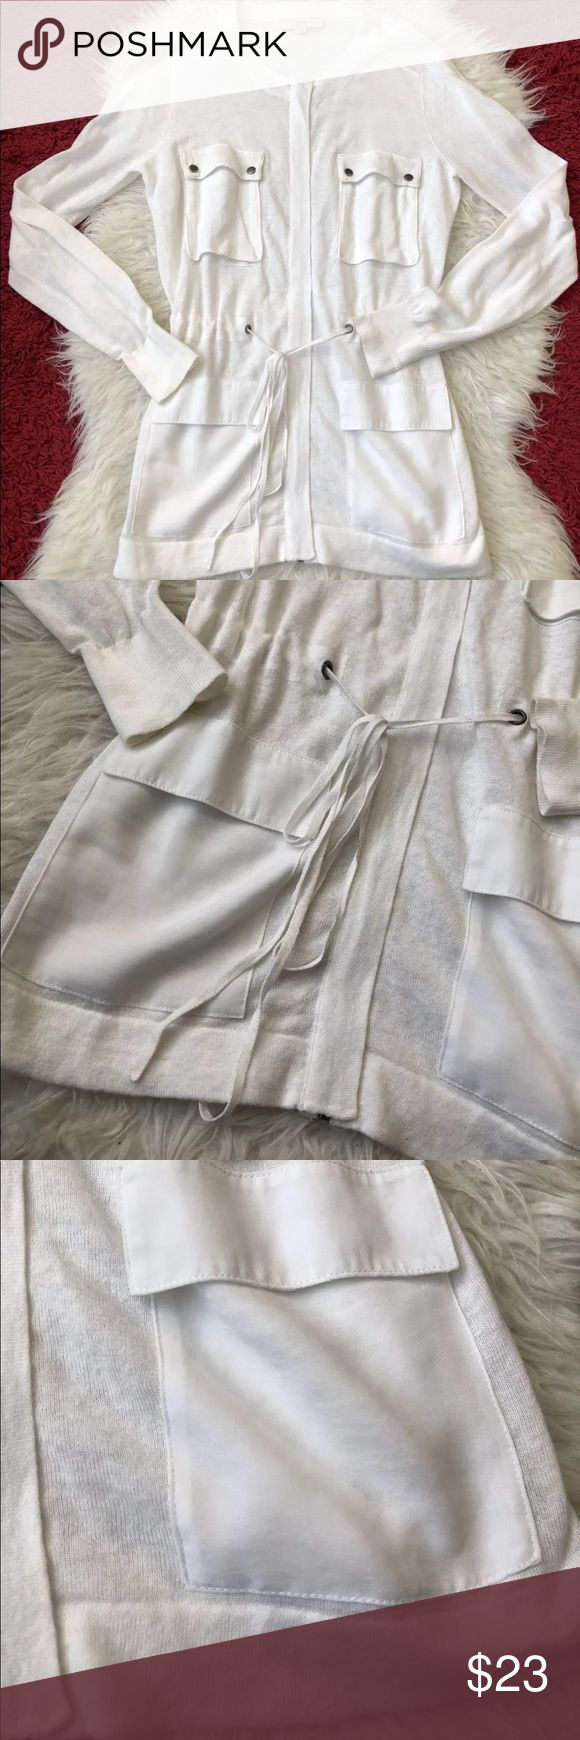 Ann Taylor Loft white zip up cardigan linen medium Ann Taylor Loft white zip up linen blend cardigan. Size medium. Lots of pockets, ties around the waist. Great condition! ann taylor loft Sweaters Cardigans